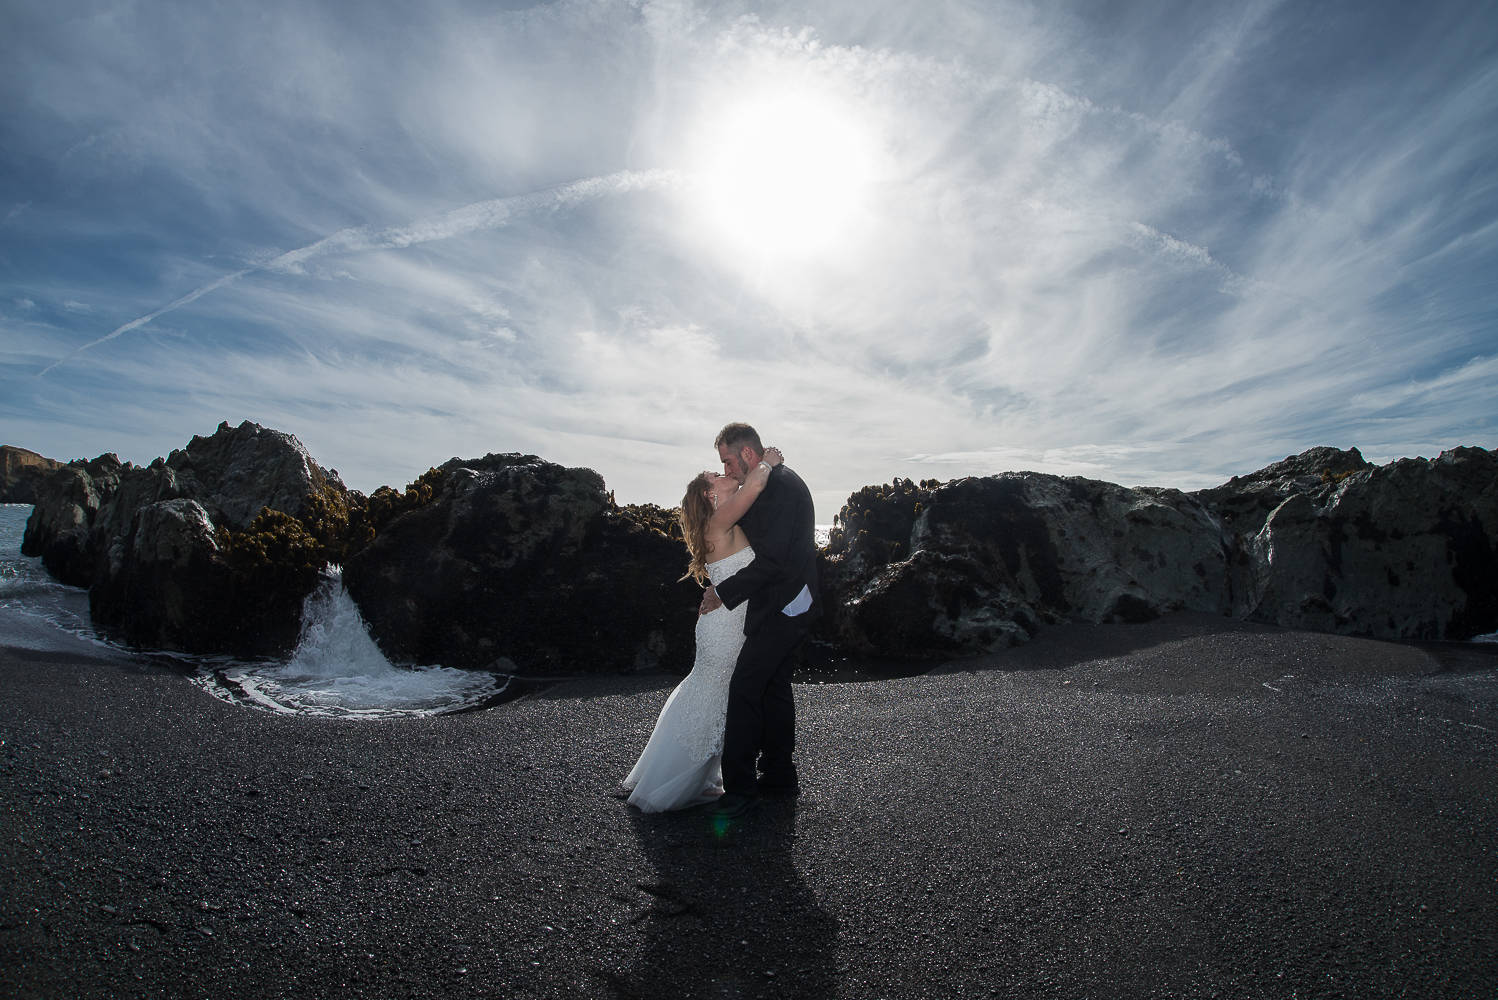 Shelter Cove-Intimate Destination beach Wedding-Parky's Pics Photography-Humboldt County_-21.jpg